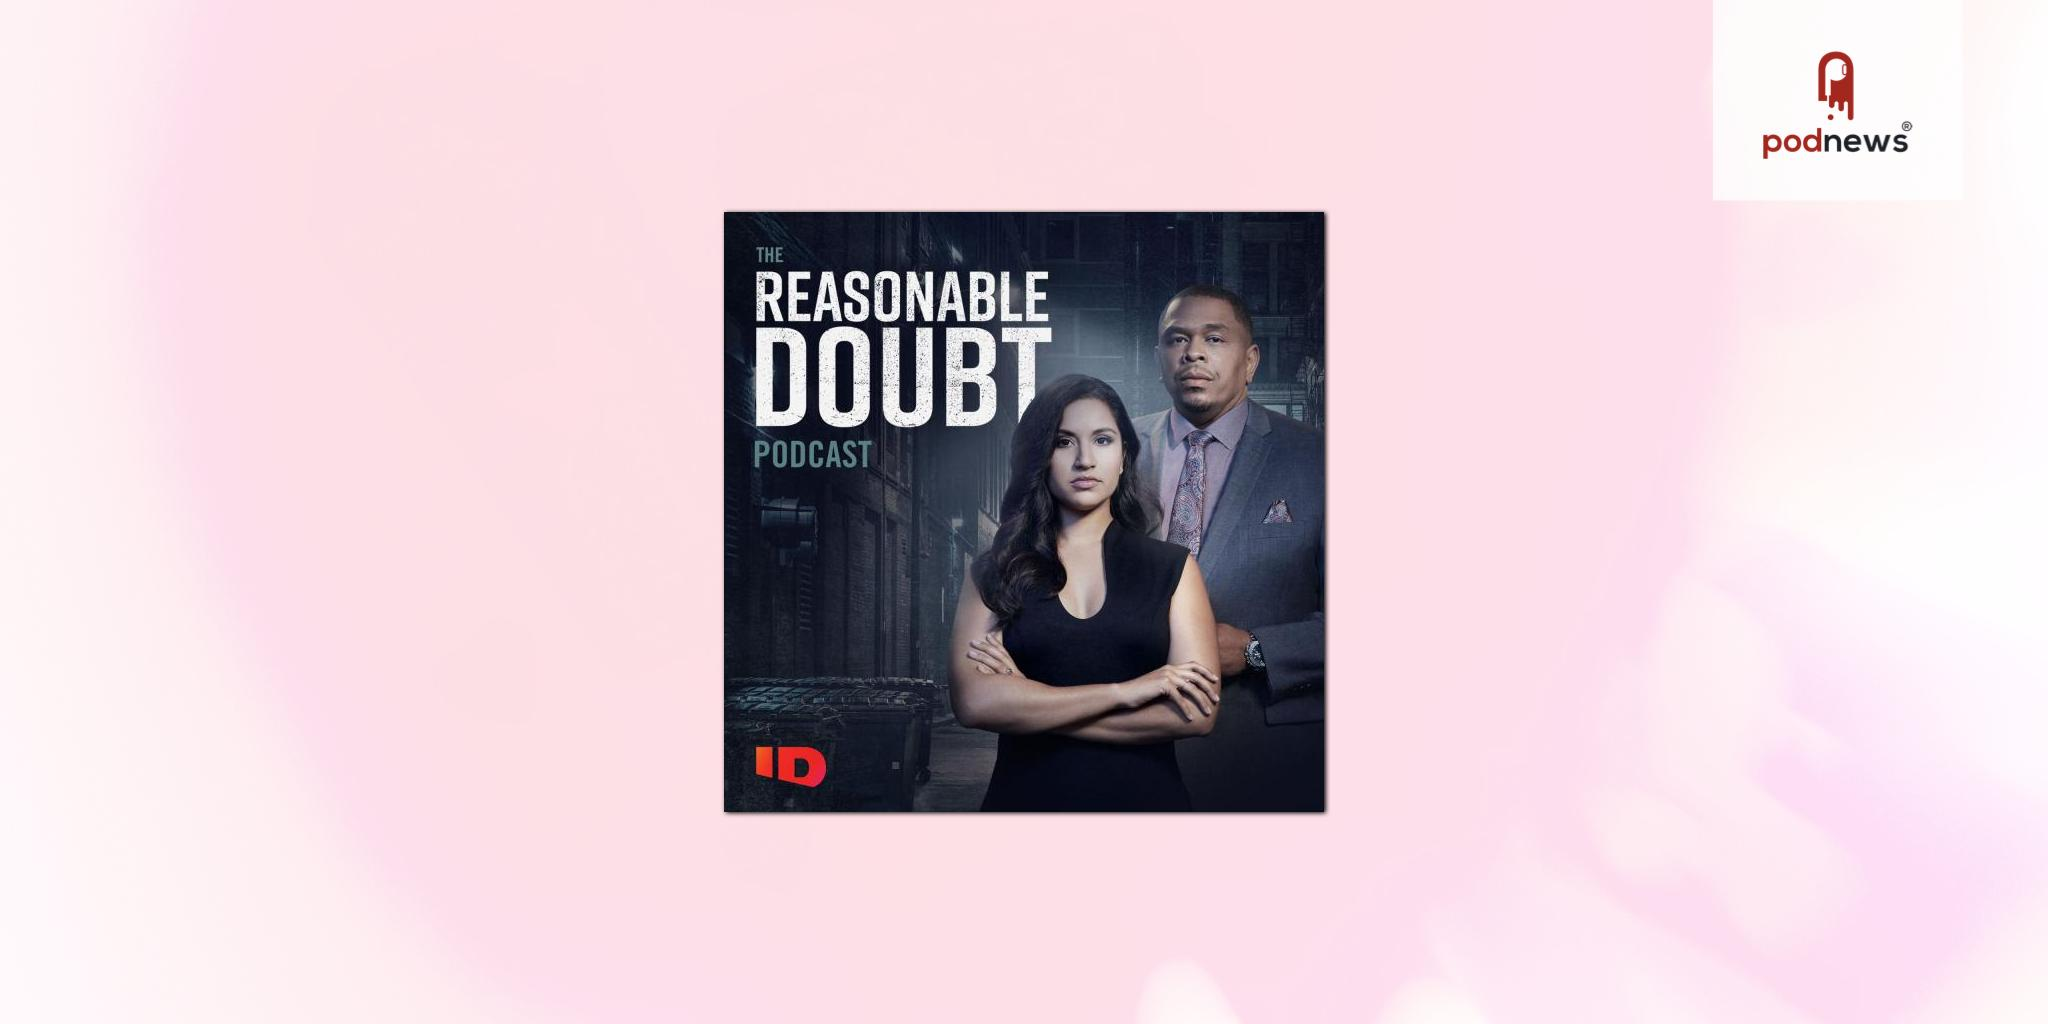 Season 2 of The Reasonable Doubt Podcast launches